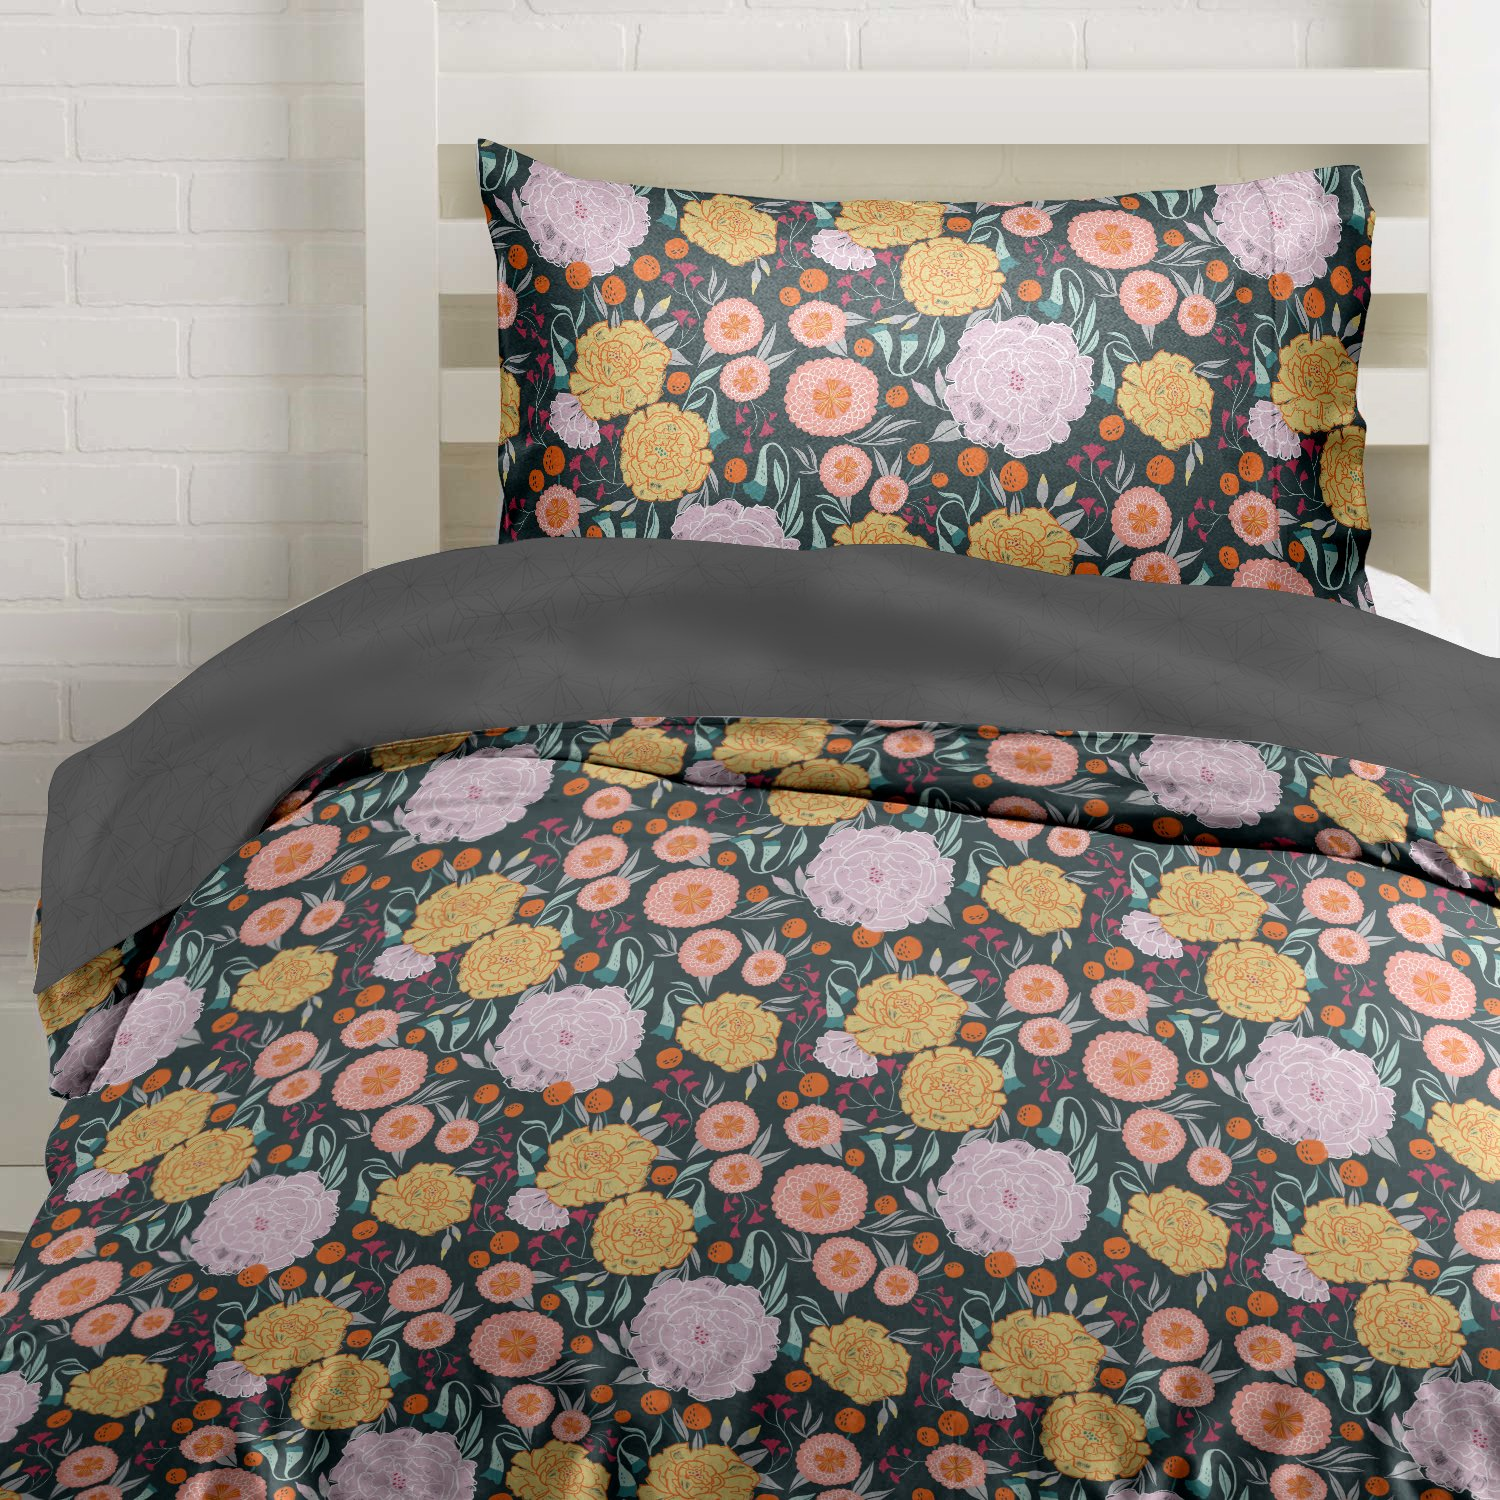 Where the Polka Dots Roam Vintage Floral on Gray Duvet Cover Twin Size Bedding, Grey with Pink, Seafoam Teal, Yellow and Coral Flowers